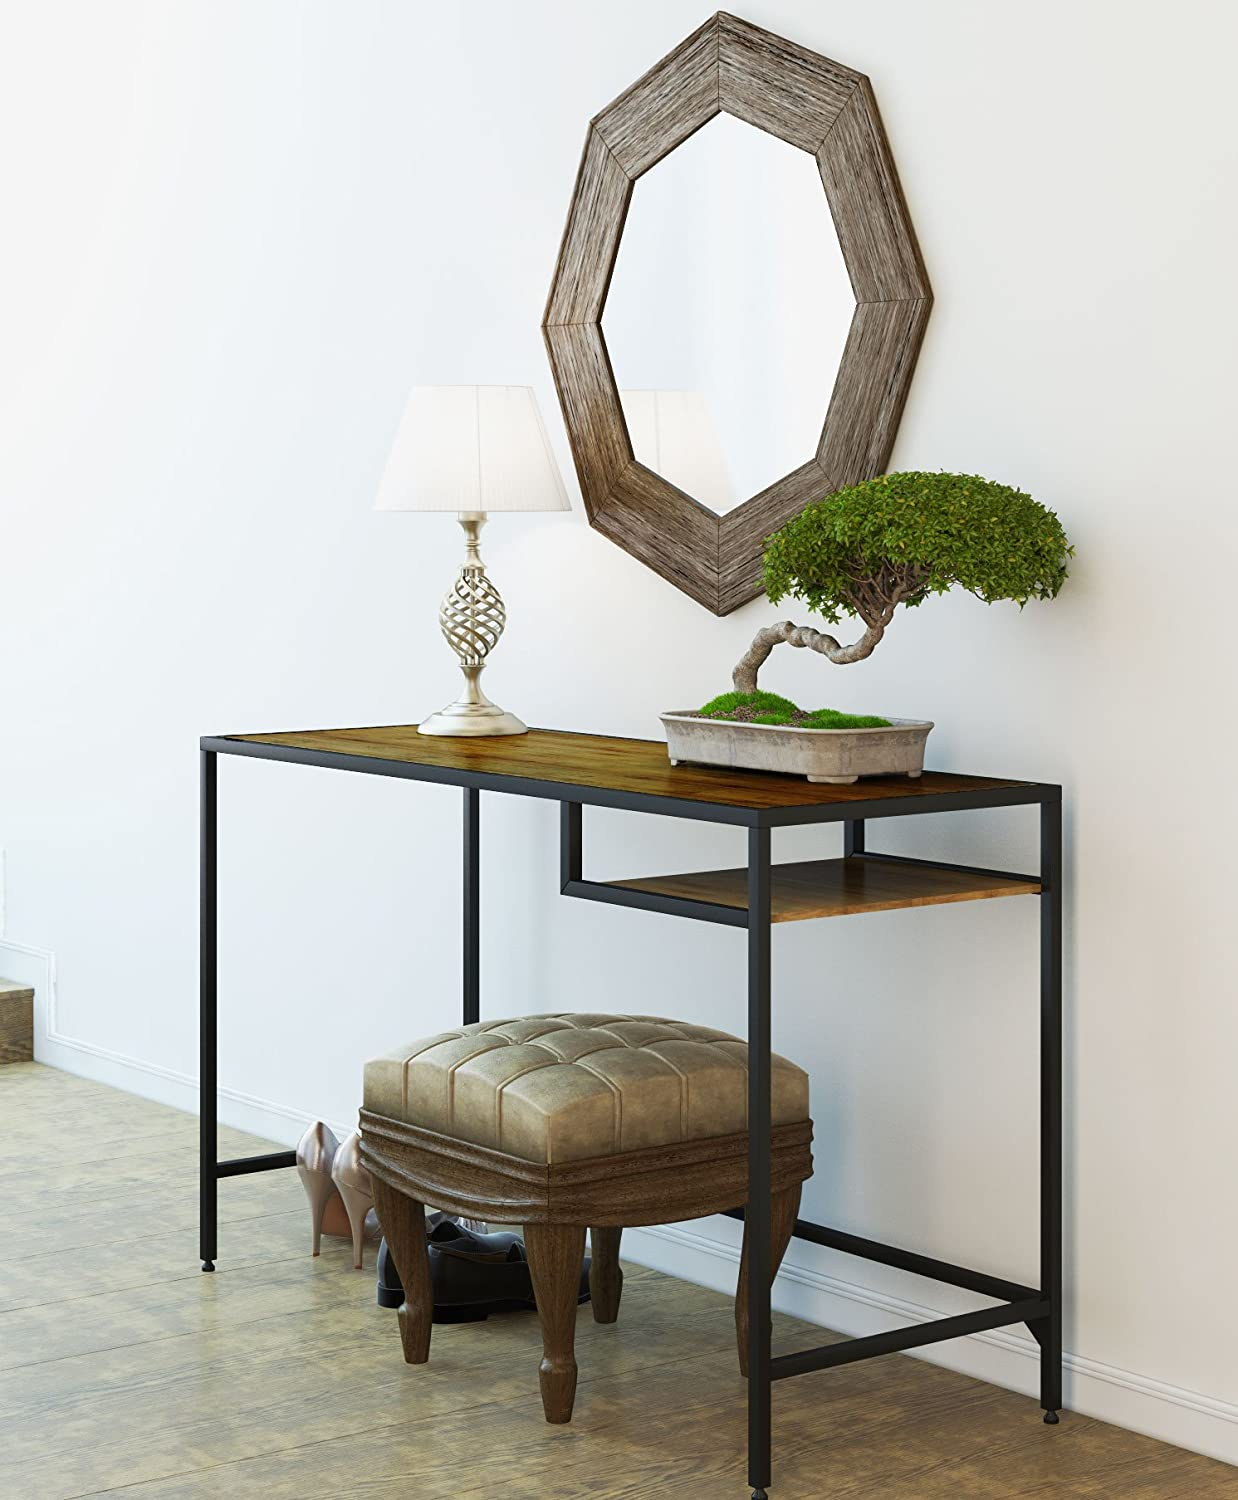 Amazon industrial vintage design space saver entryway hallway amazon industrial vintage design space saver entryway hallway console table desk with lower shelf storage wood top and metal black metal frame home geotapseo Choice Image